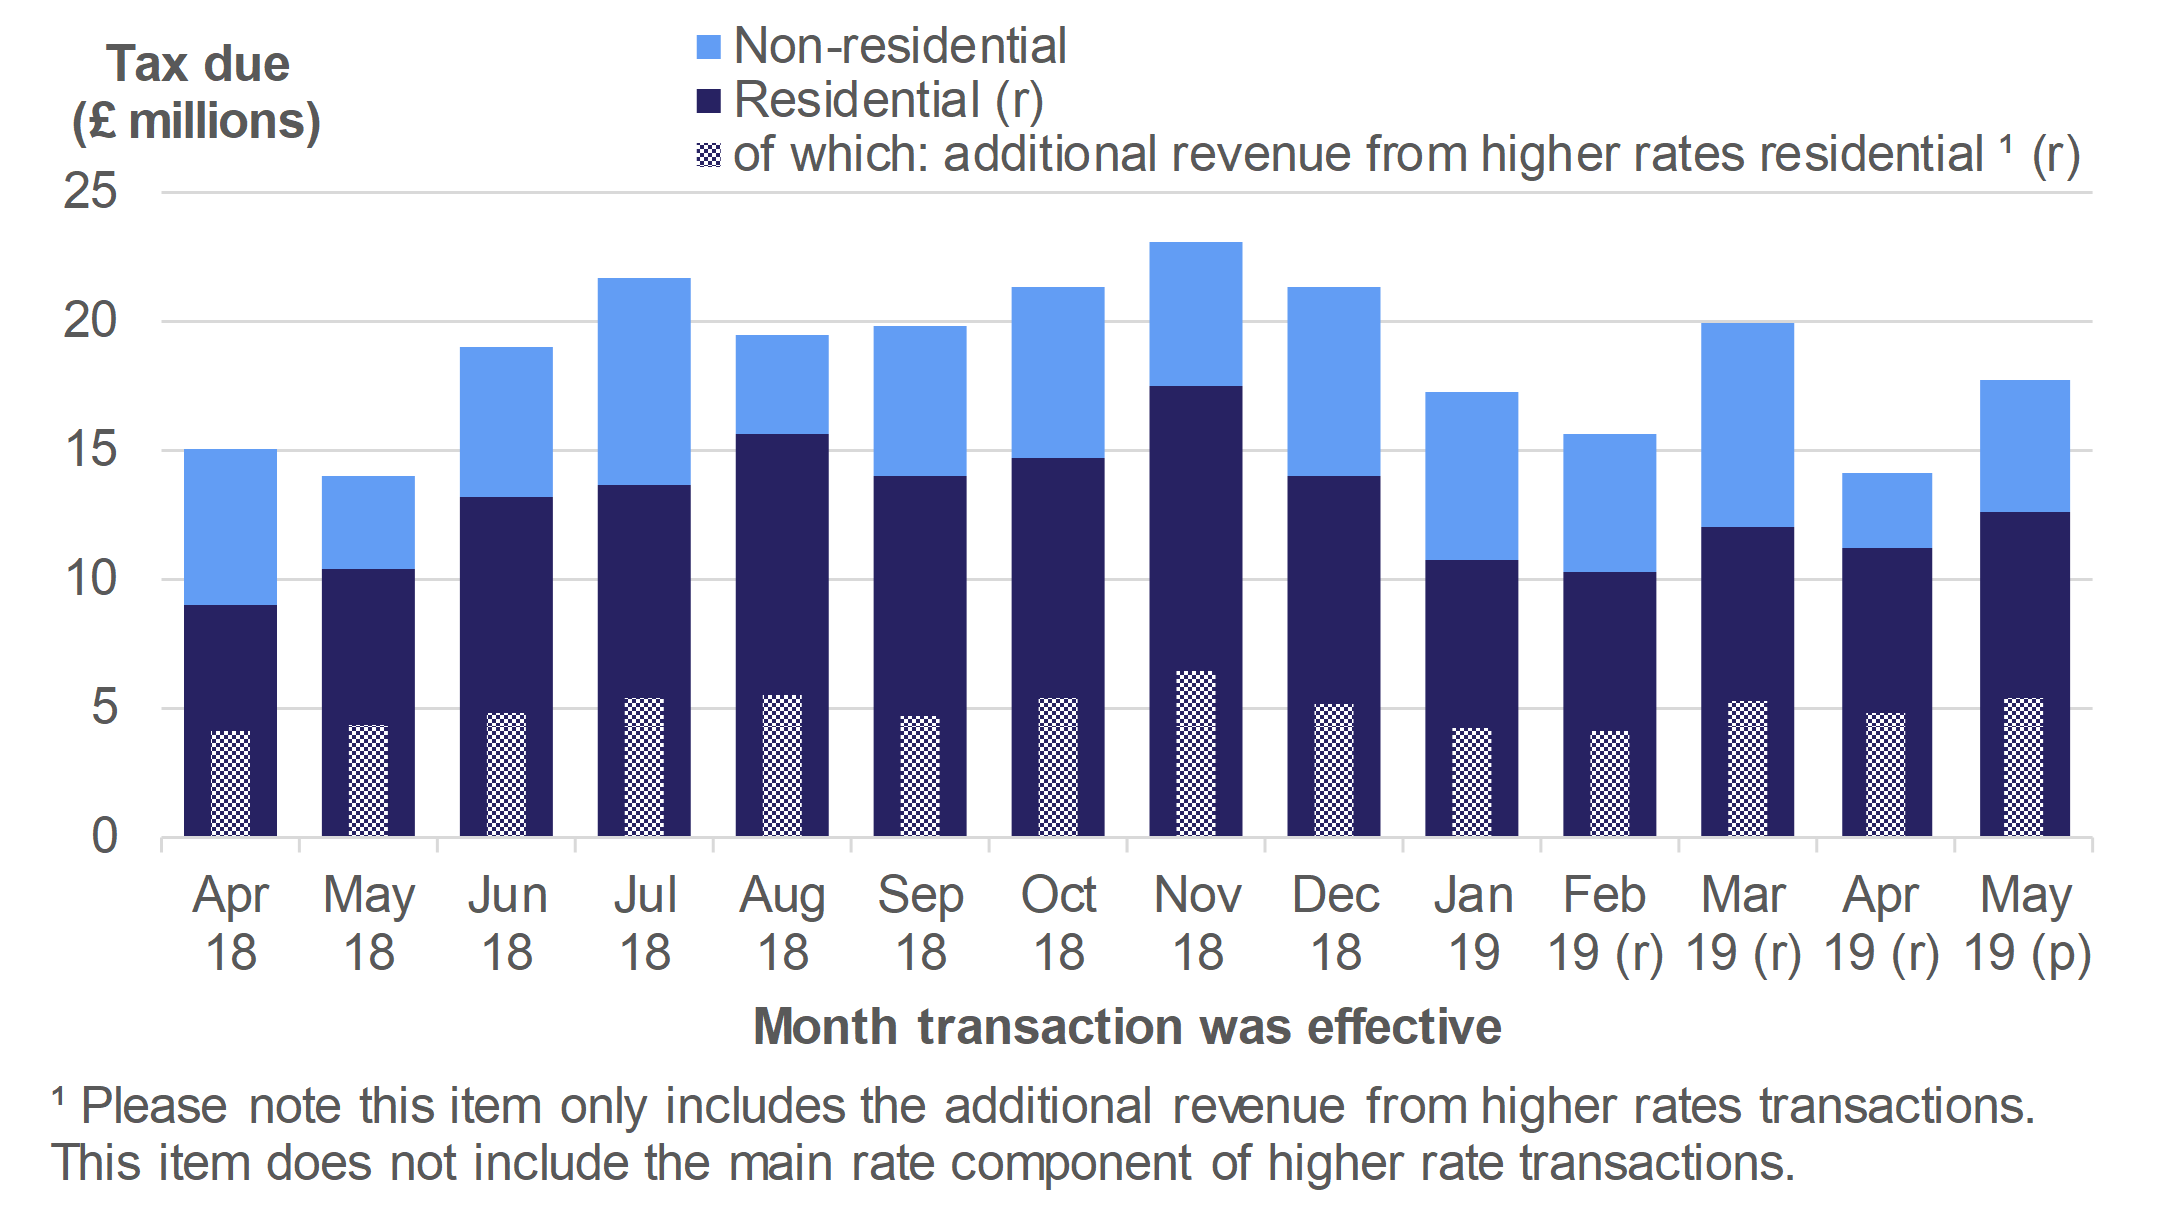 Figure 2.5 shows the monthly amount of tax due on reported notifiable transactions from April 2018 to May 2019, for residential and non-residential transactions.